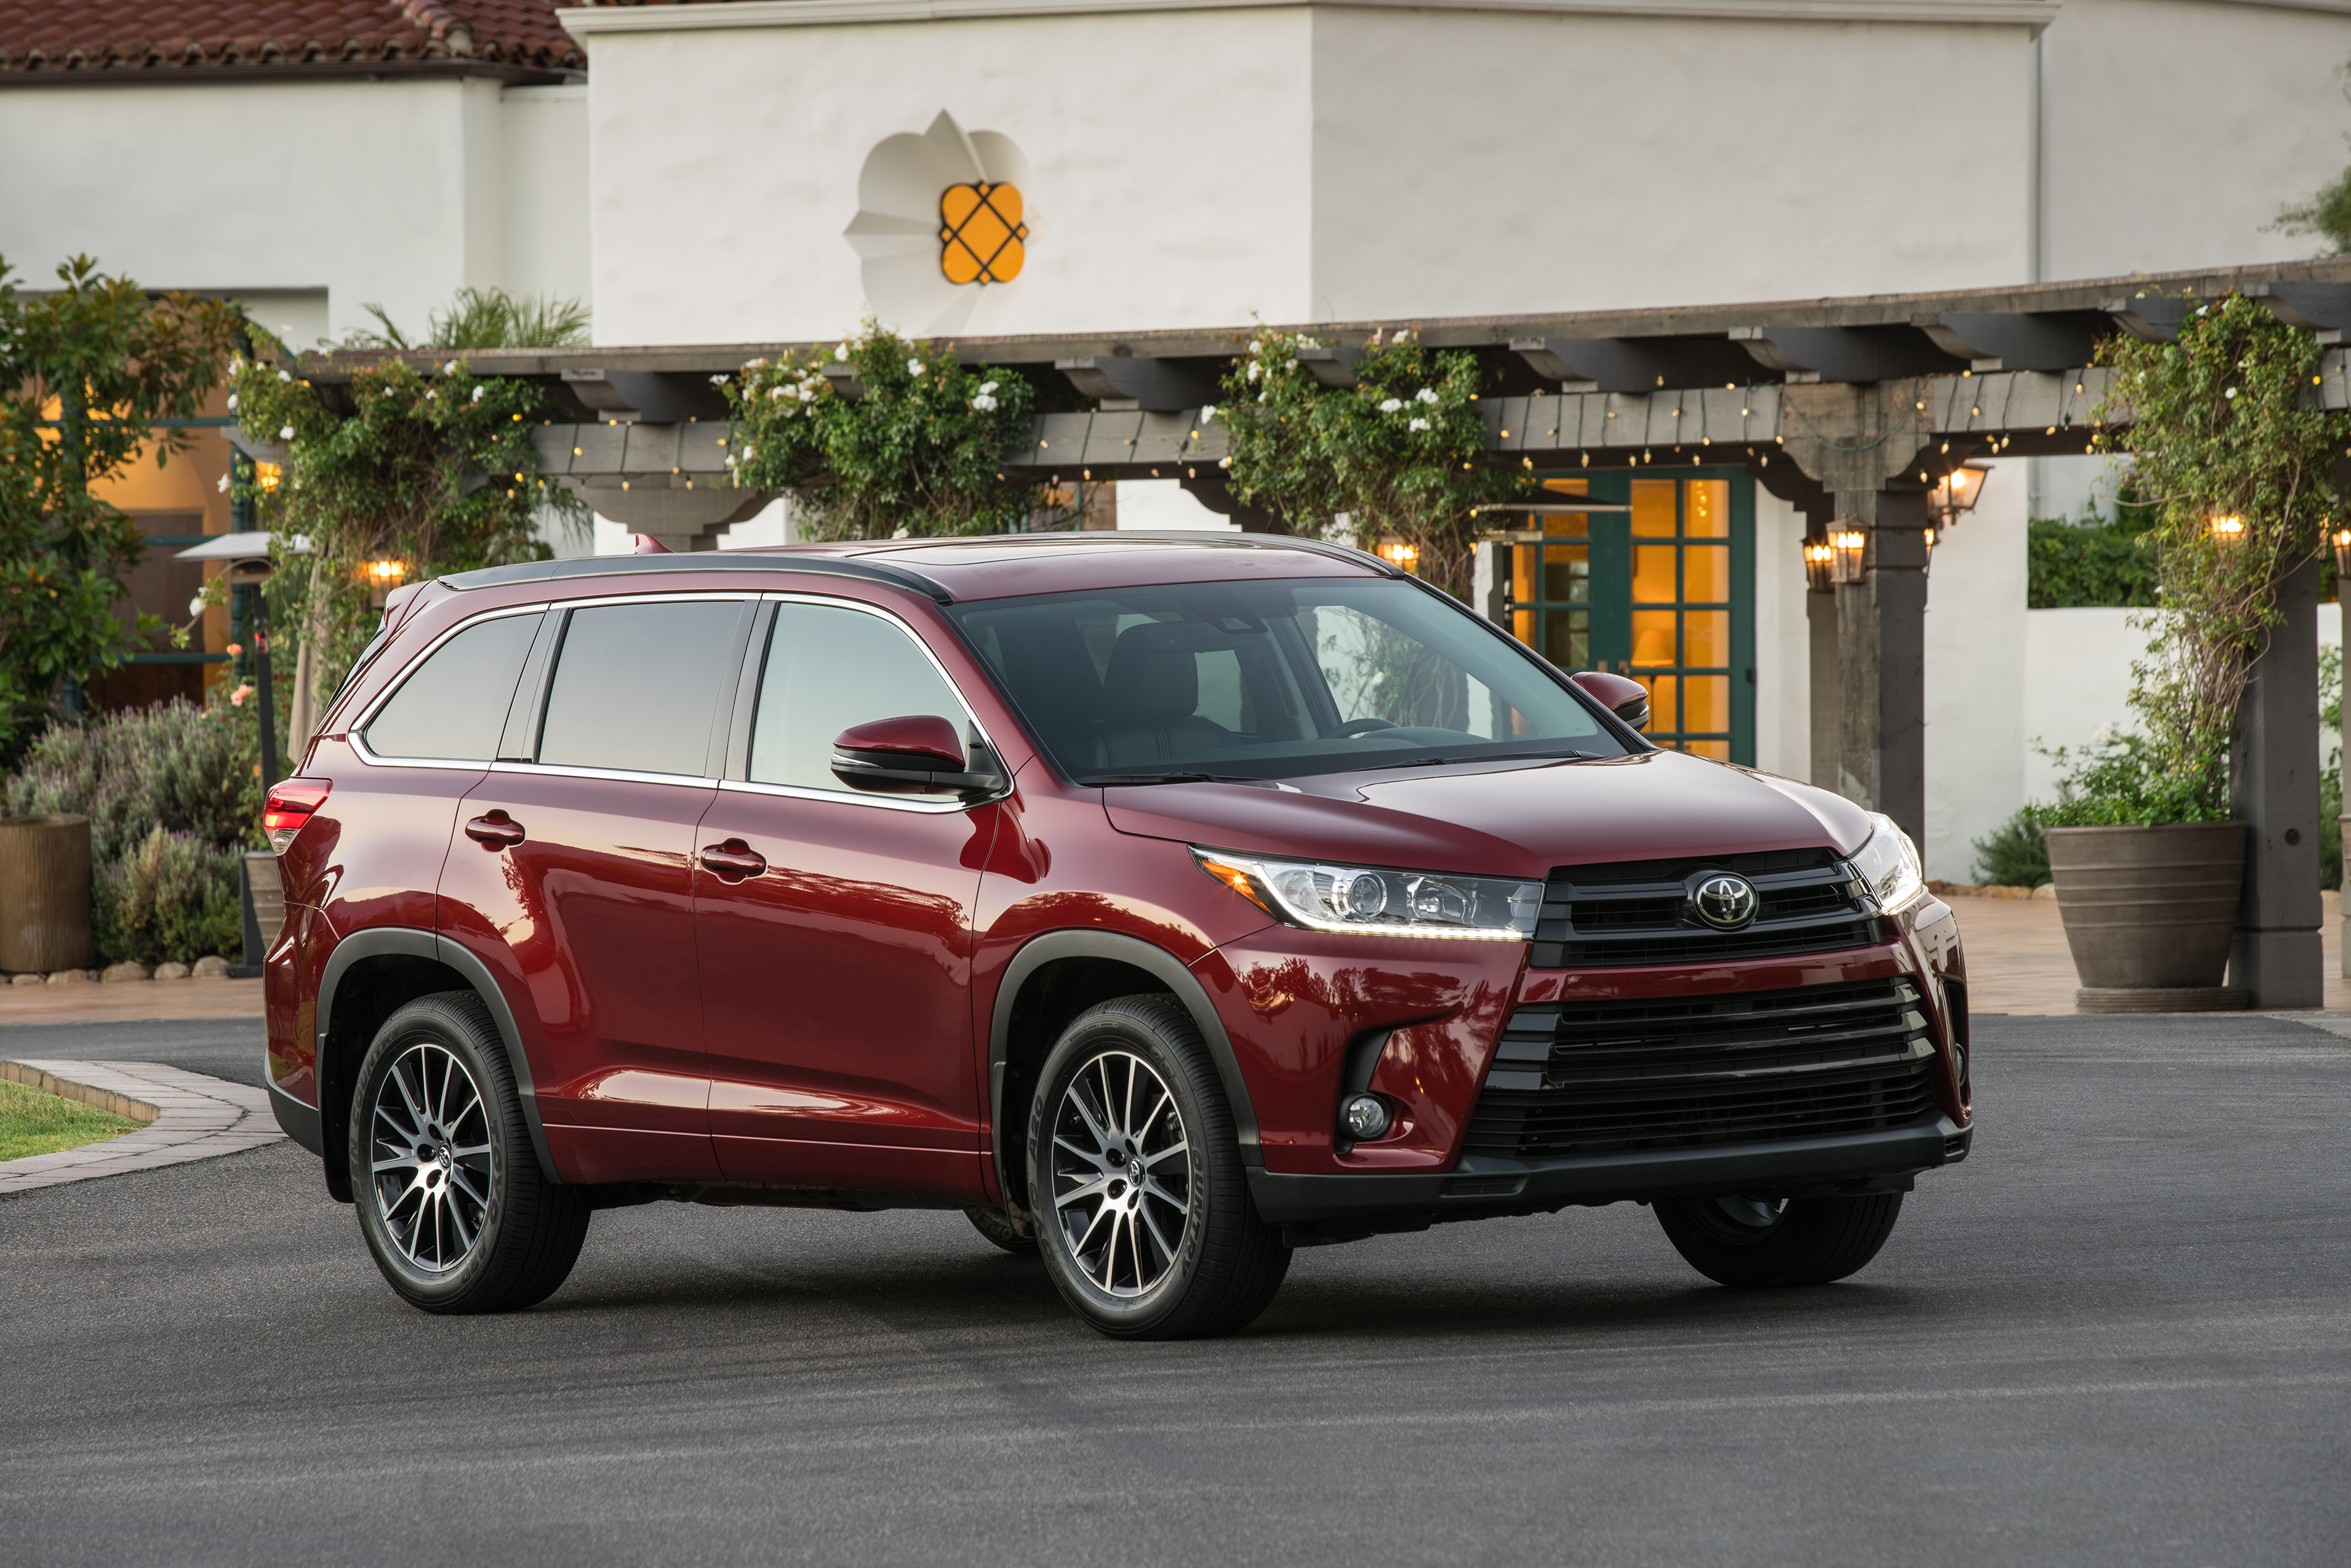 Windsor City Toyota Highlander